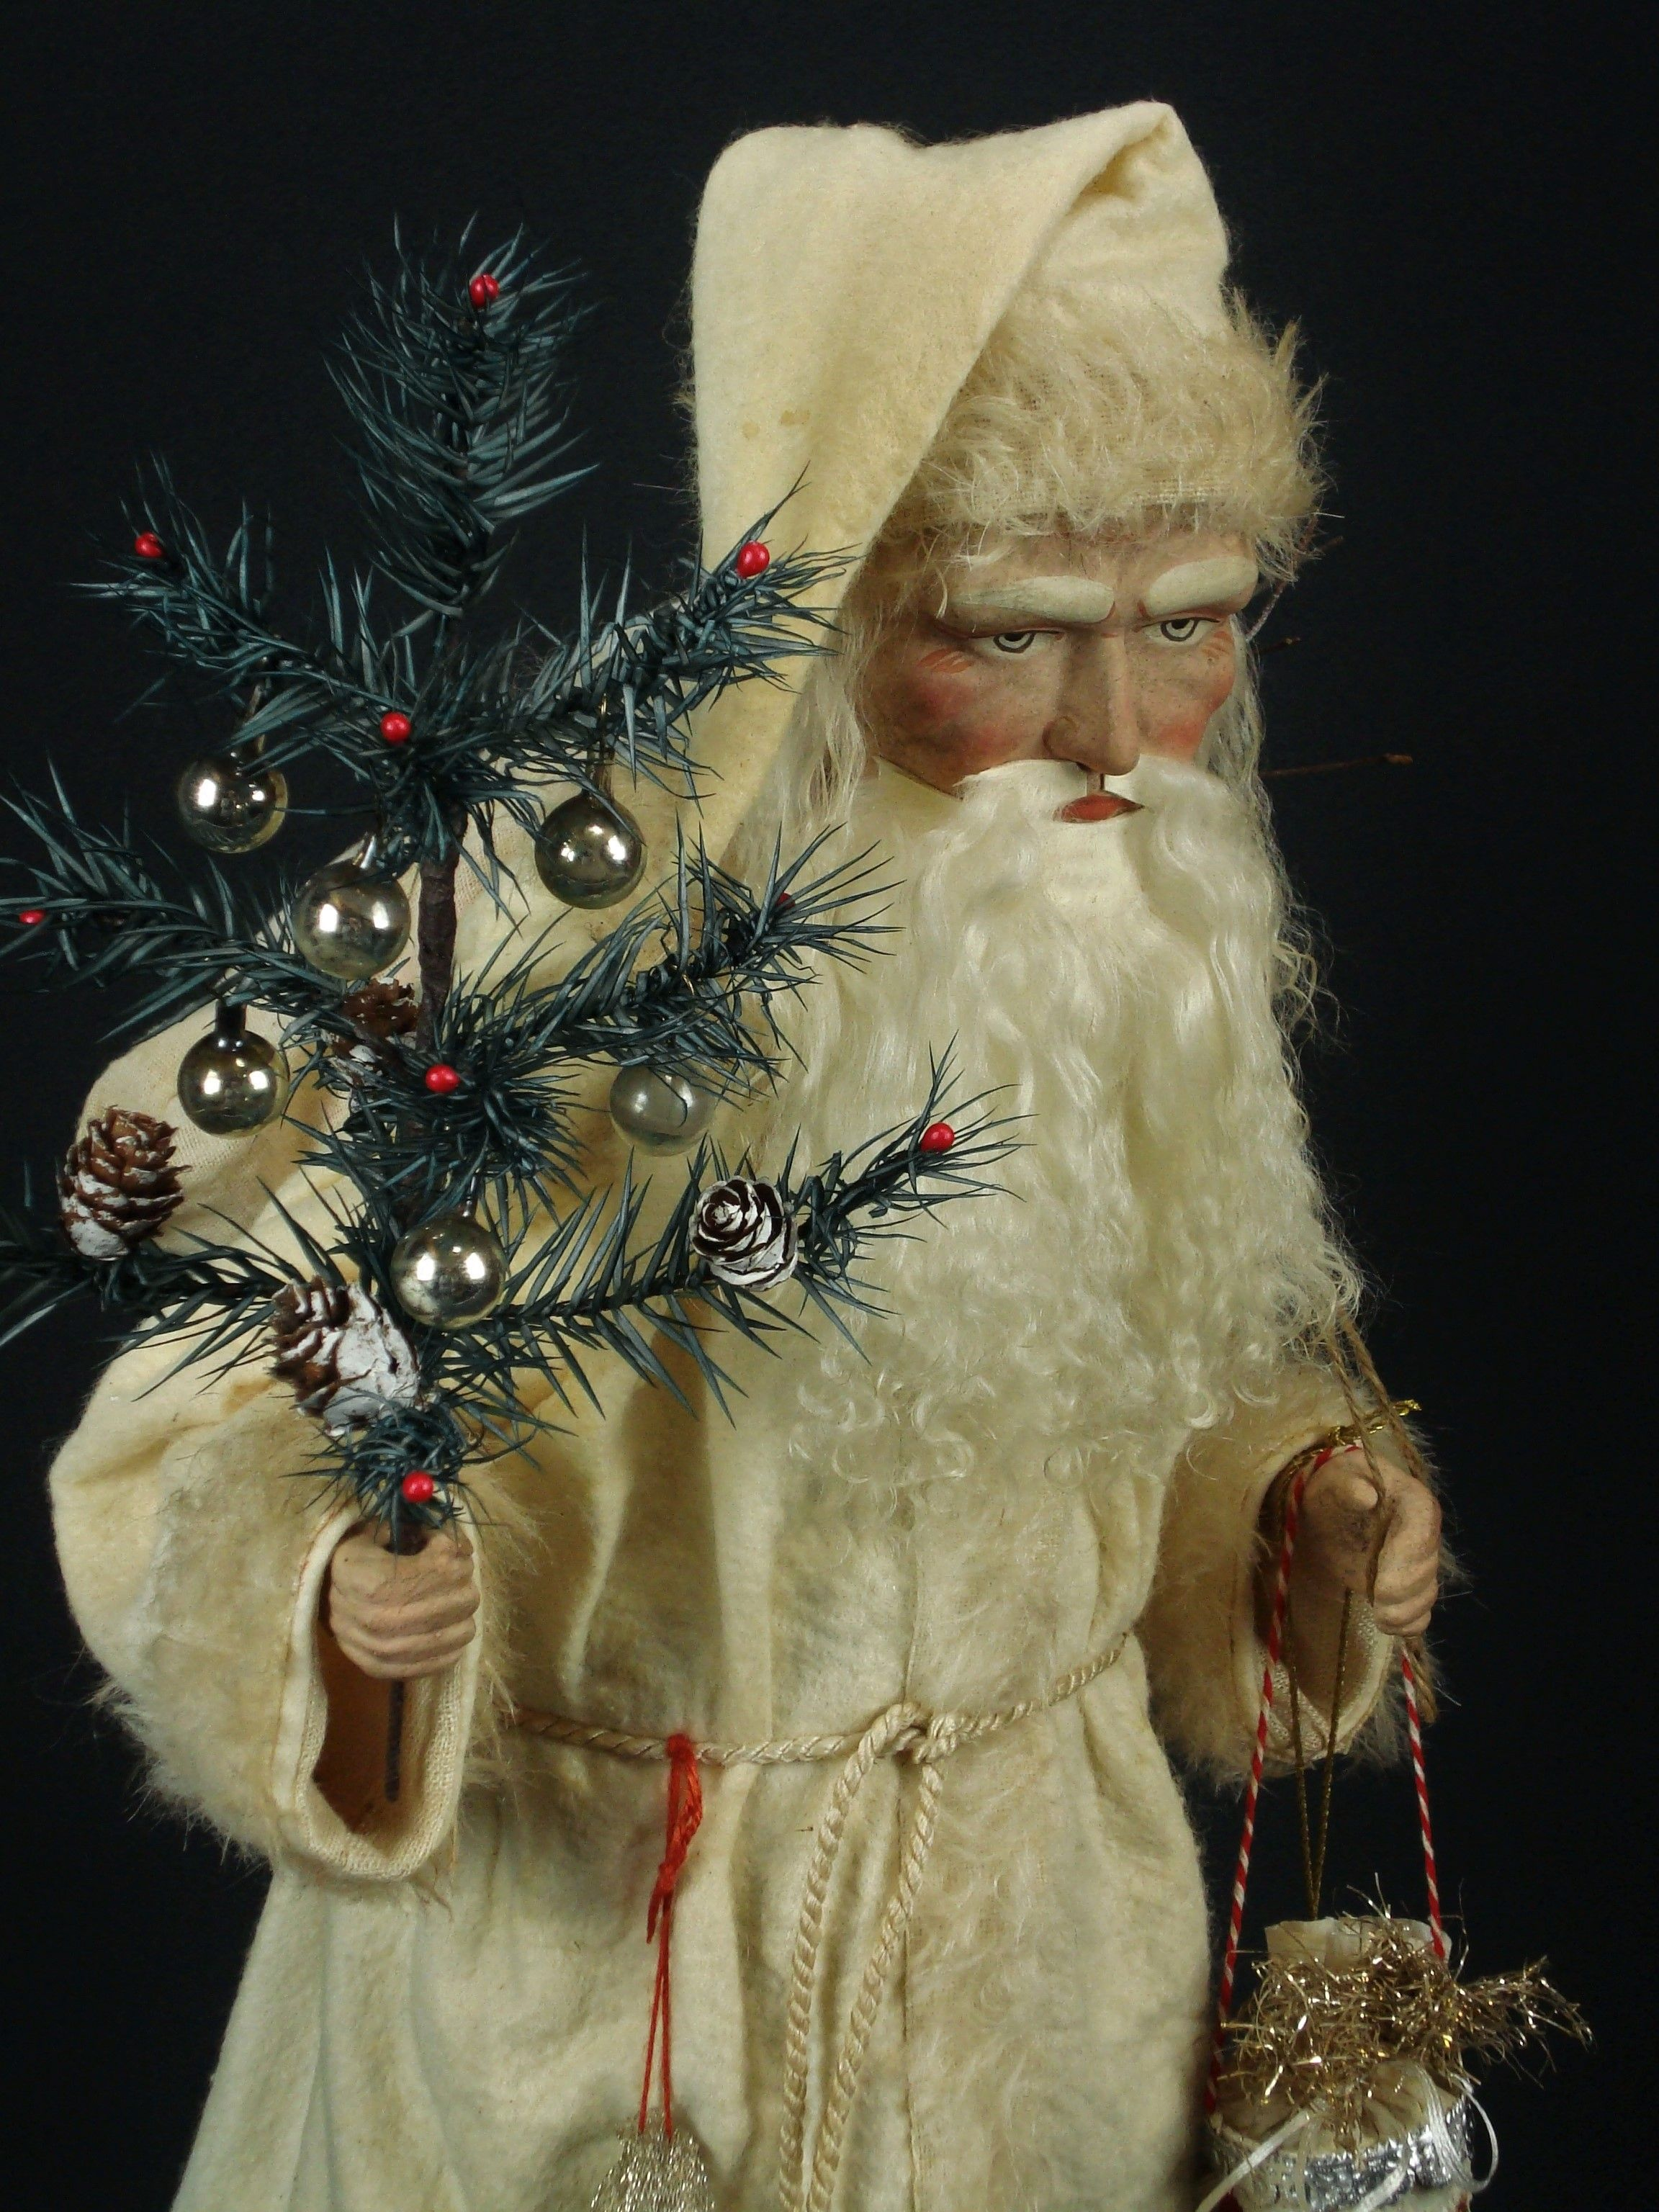 19 inch Paper mache *German Santa* candy container by Paul Turner studio